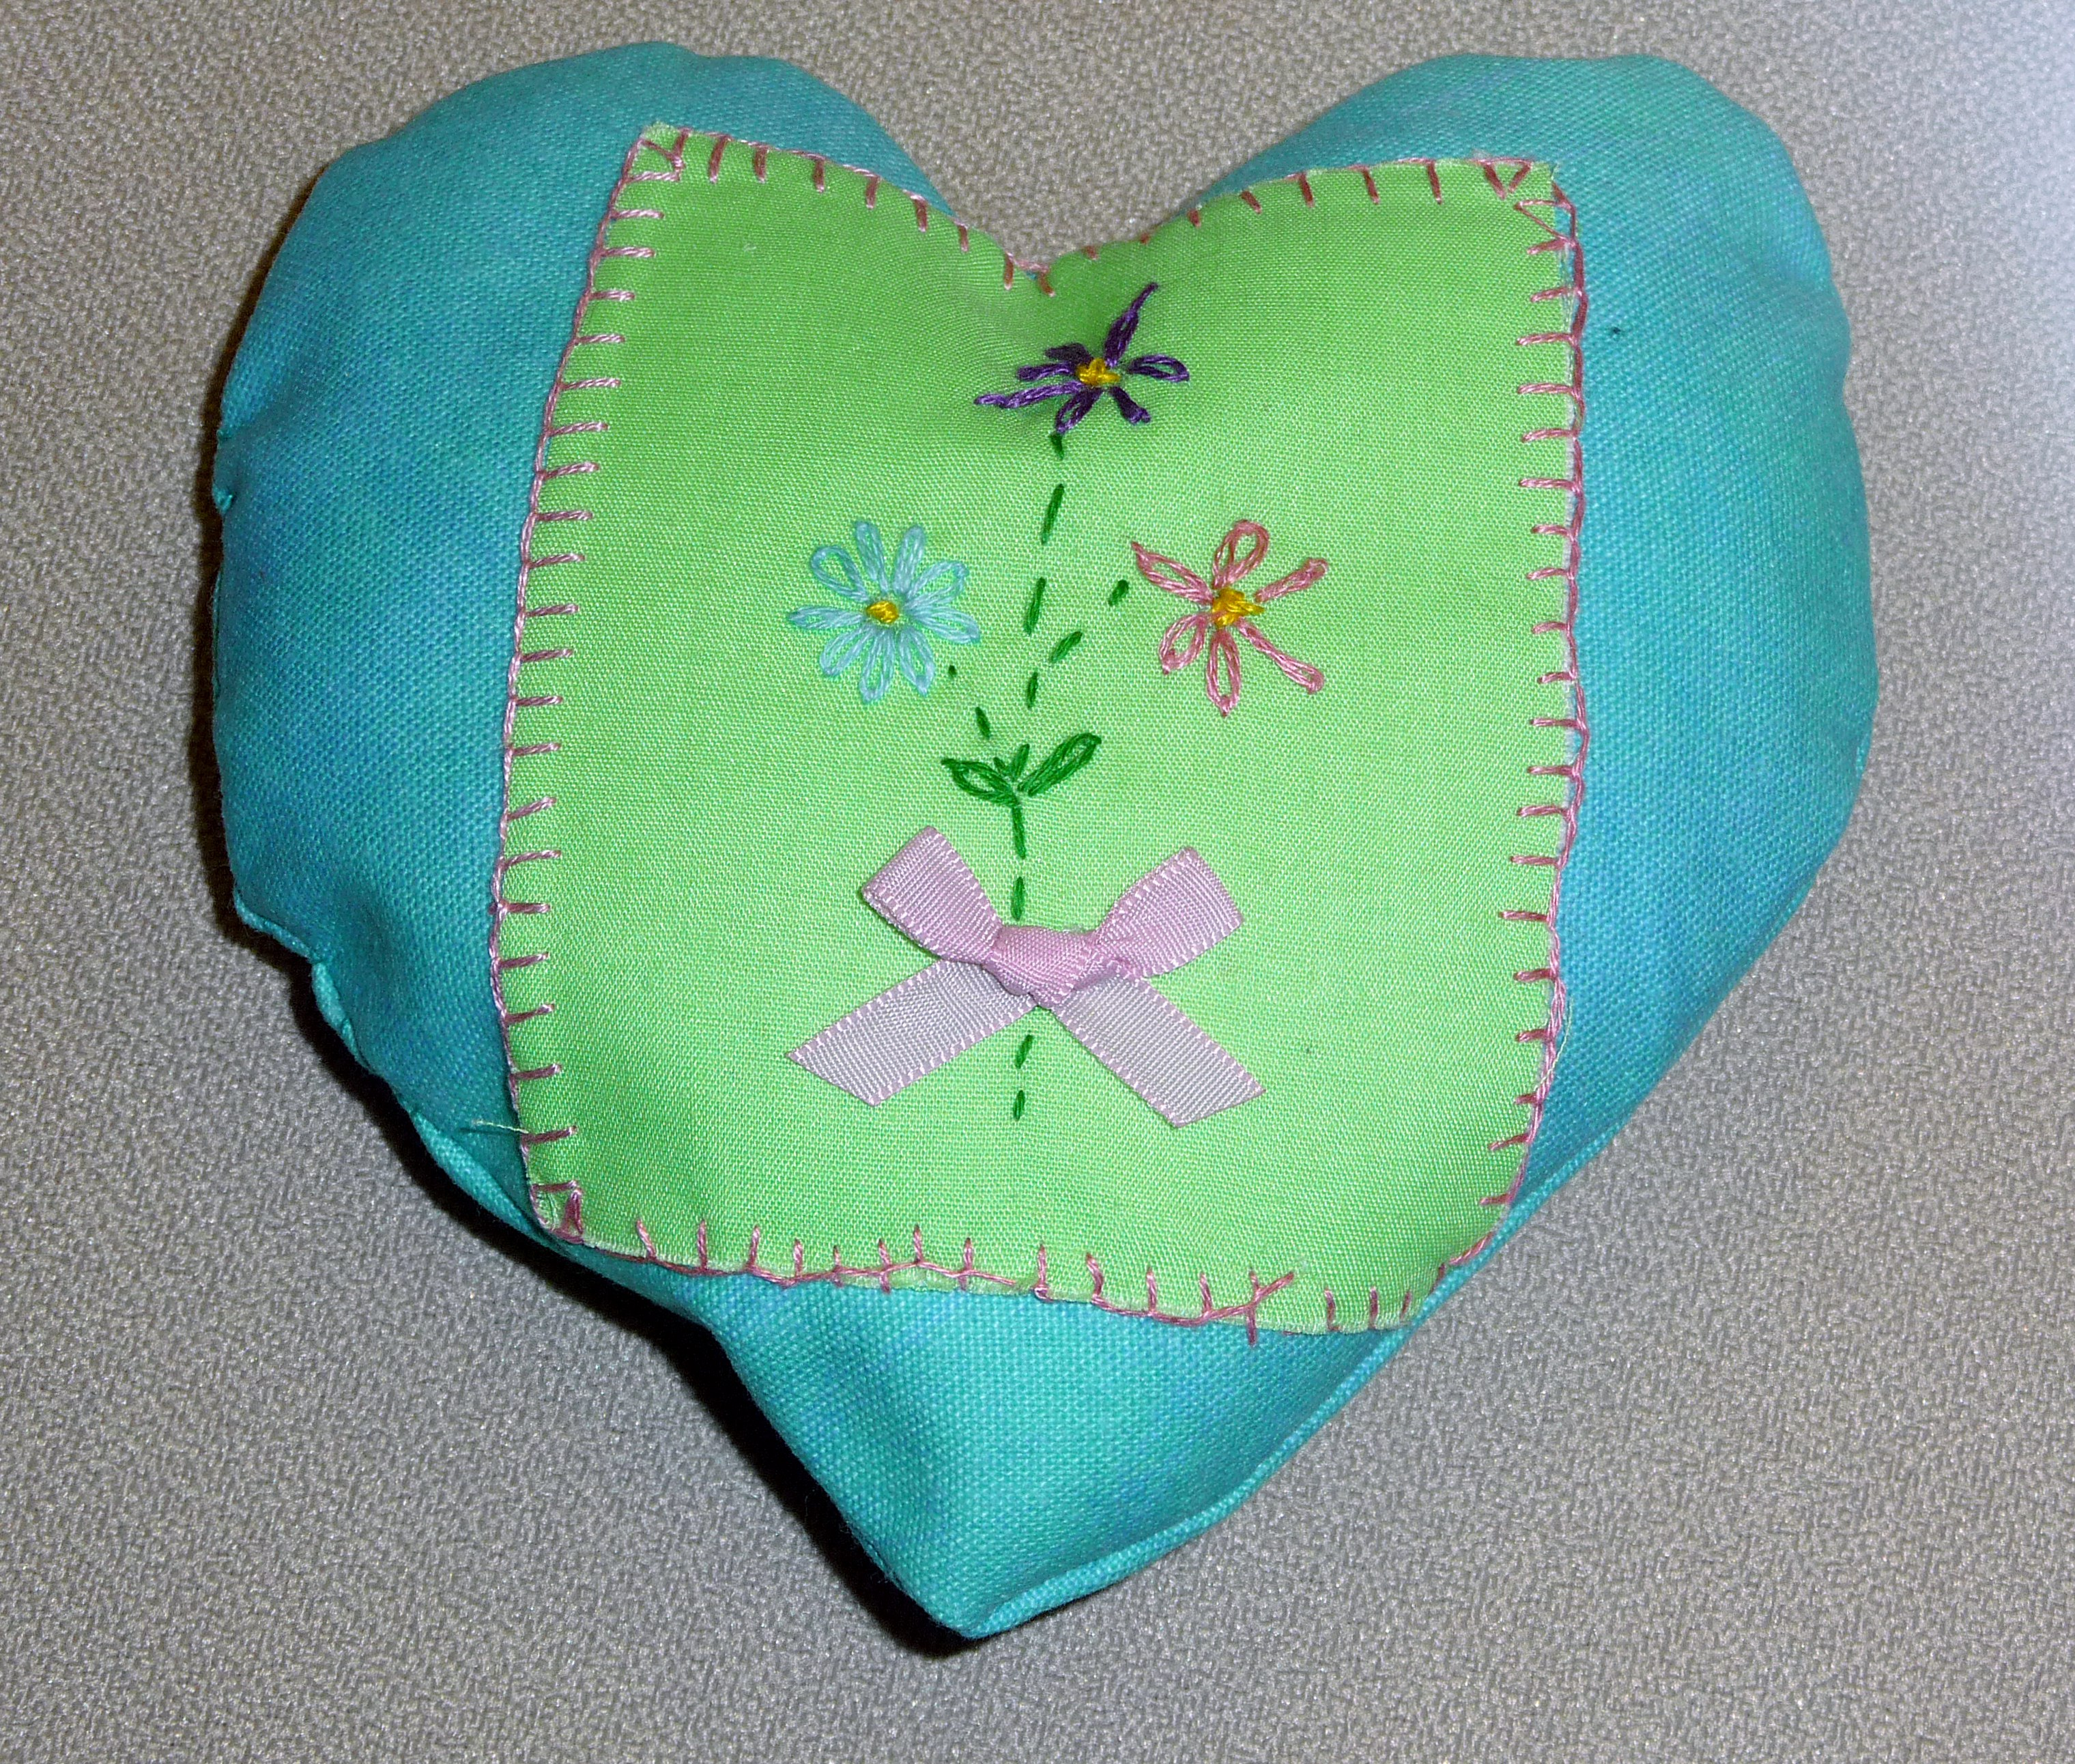 pincushion to commemorate World War 1 made by Cerys, a Merseyside Young Embroiderer